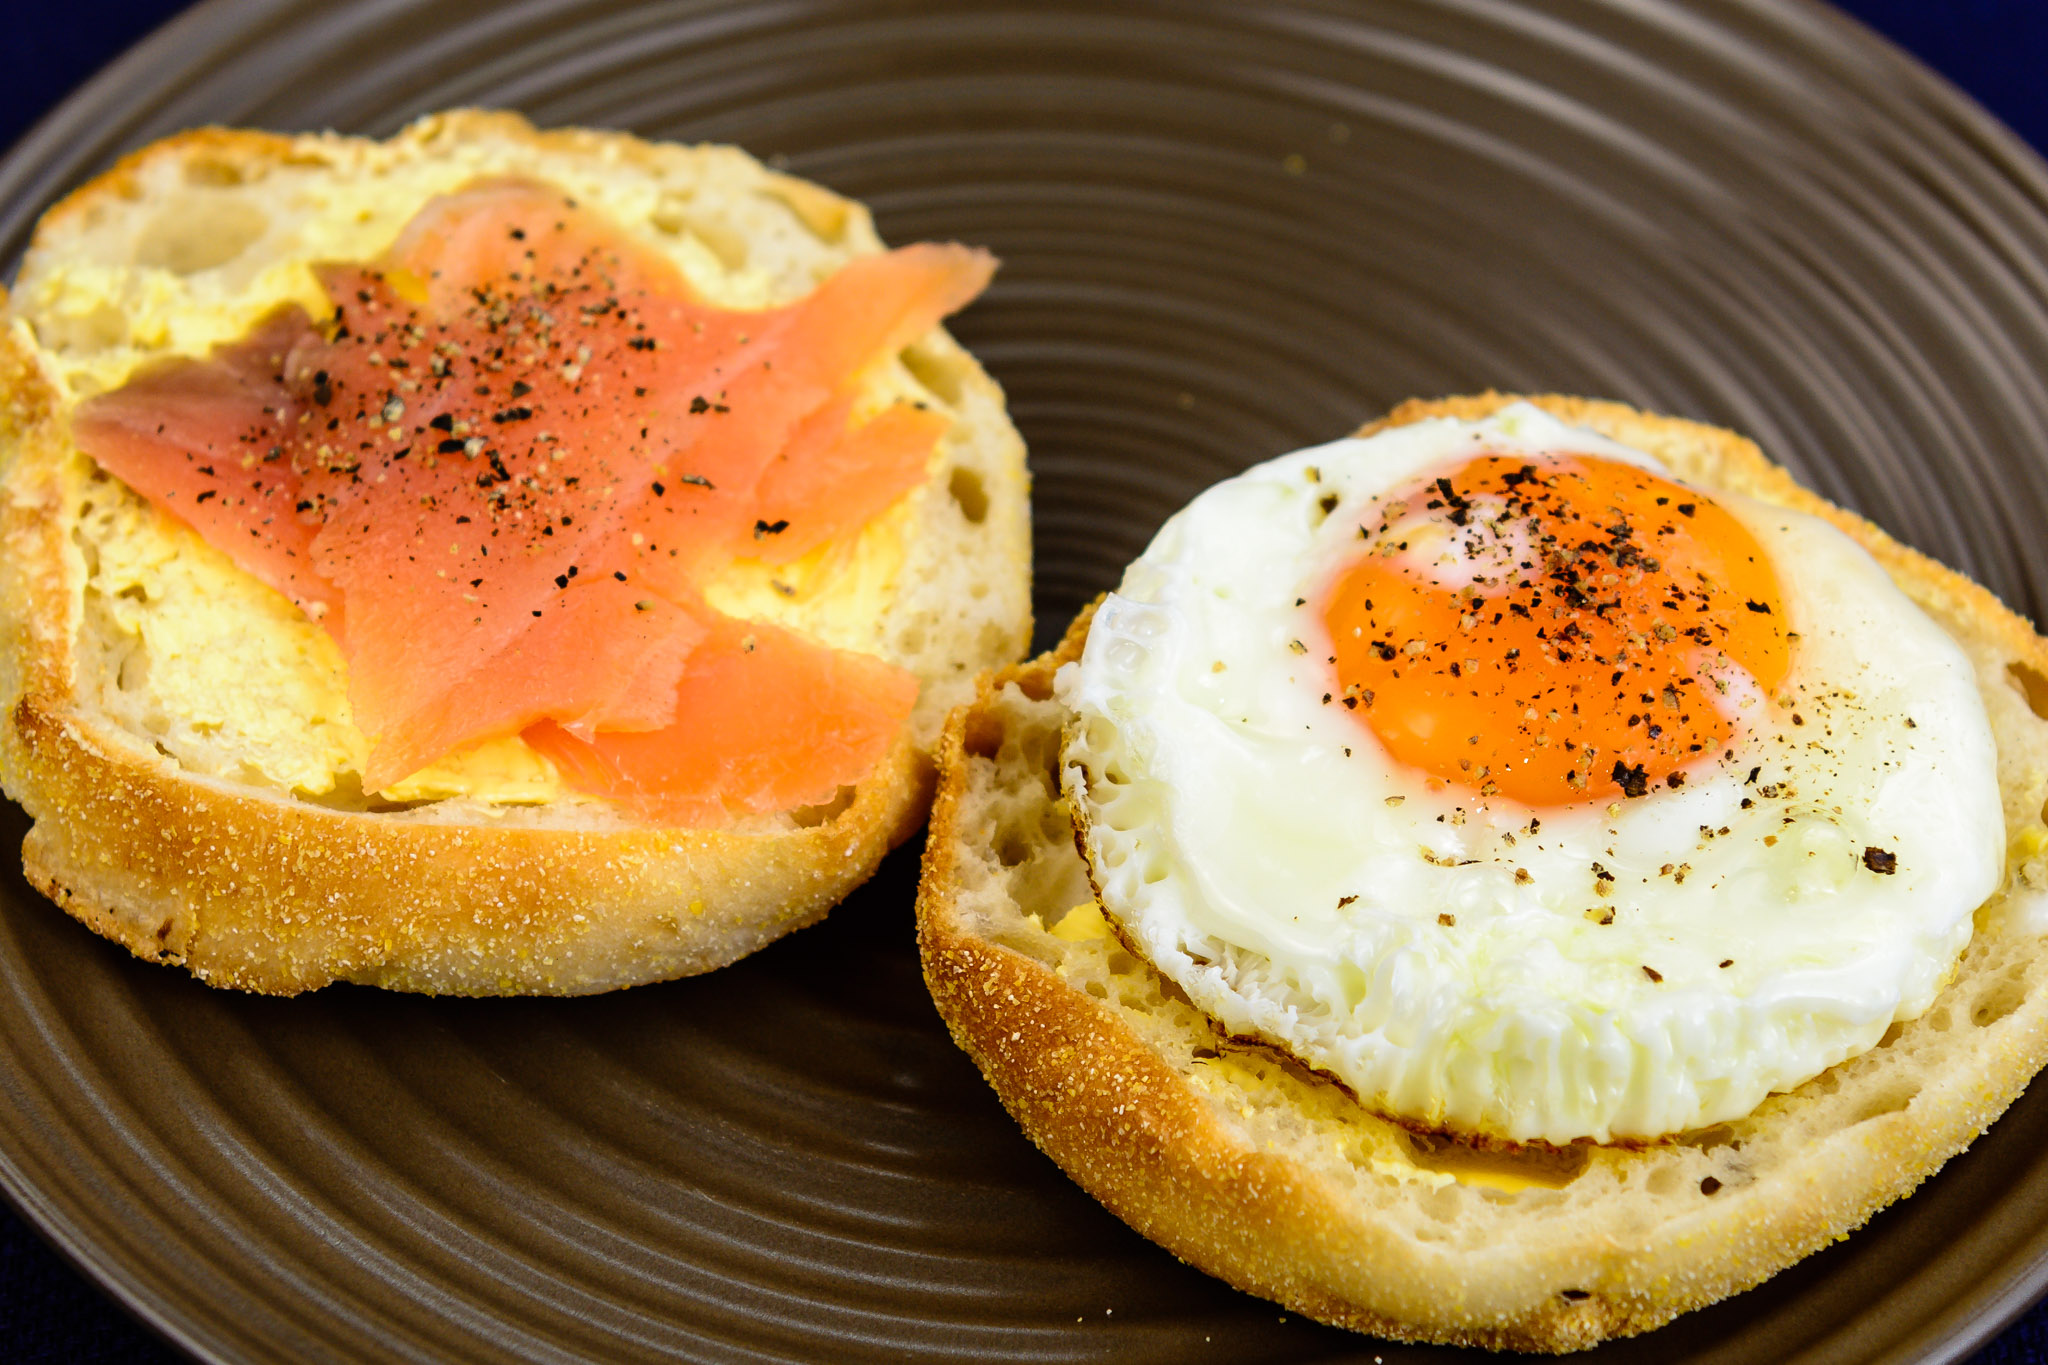 Monday breakfast. Fried egg and smoked salmon on an English muffin.